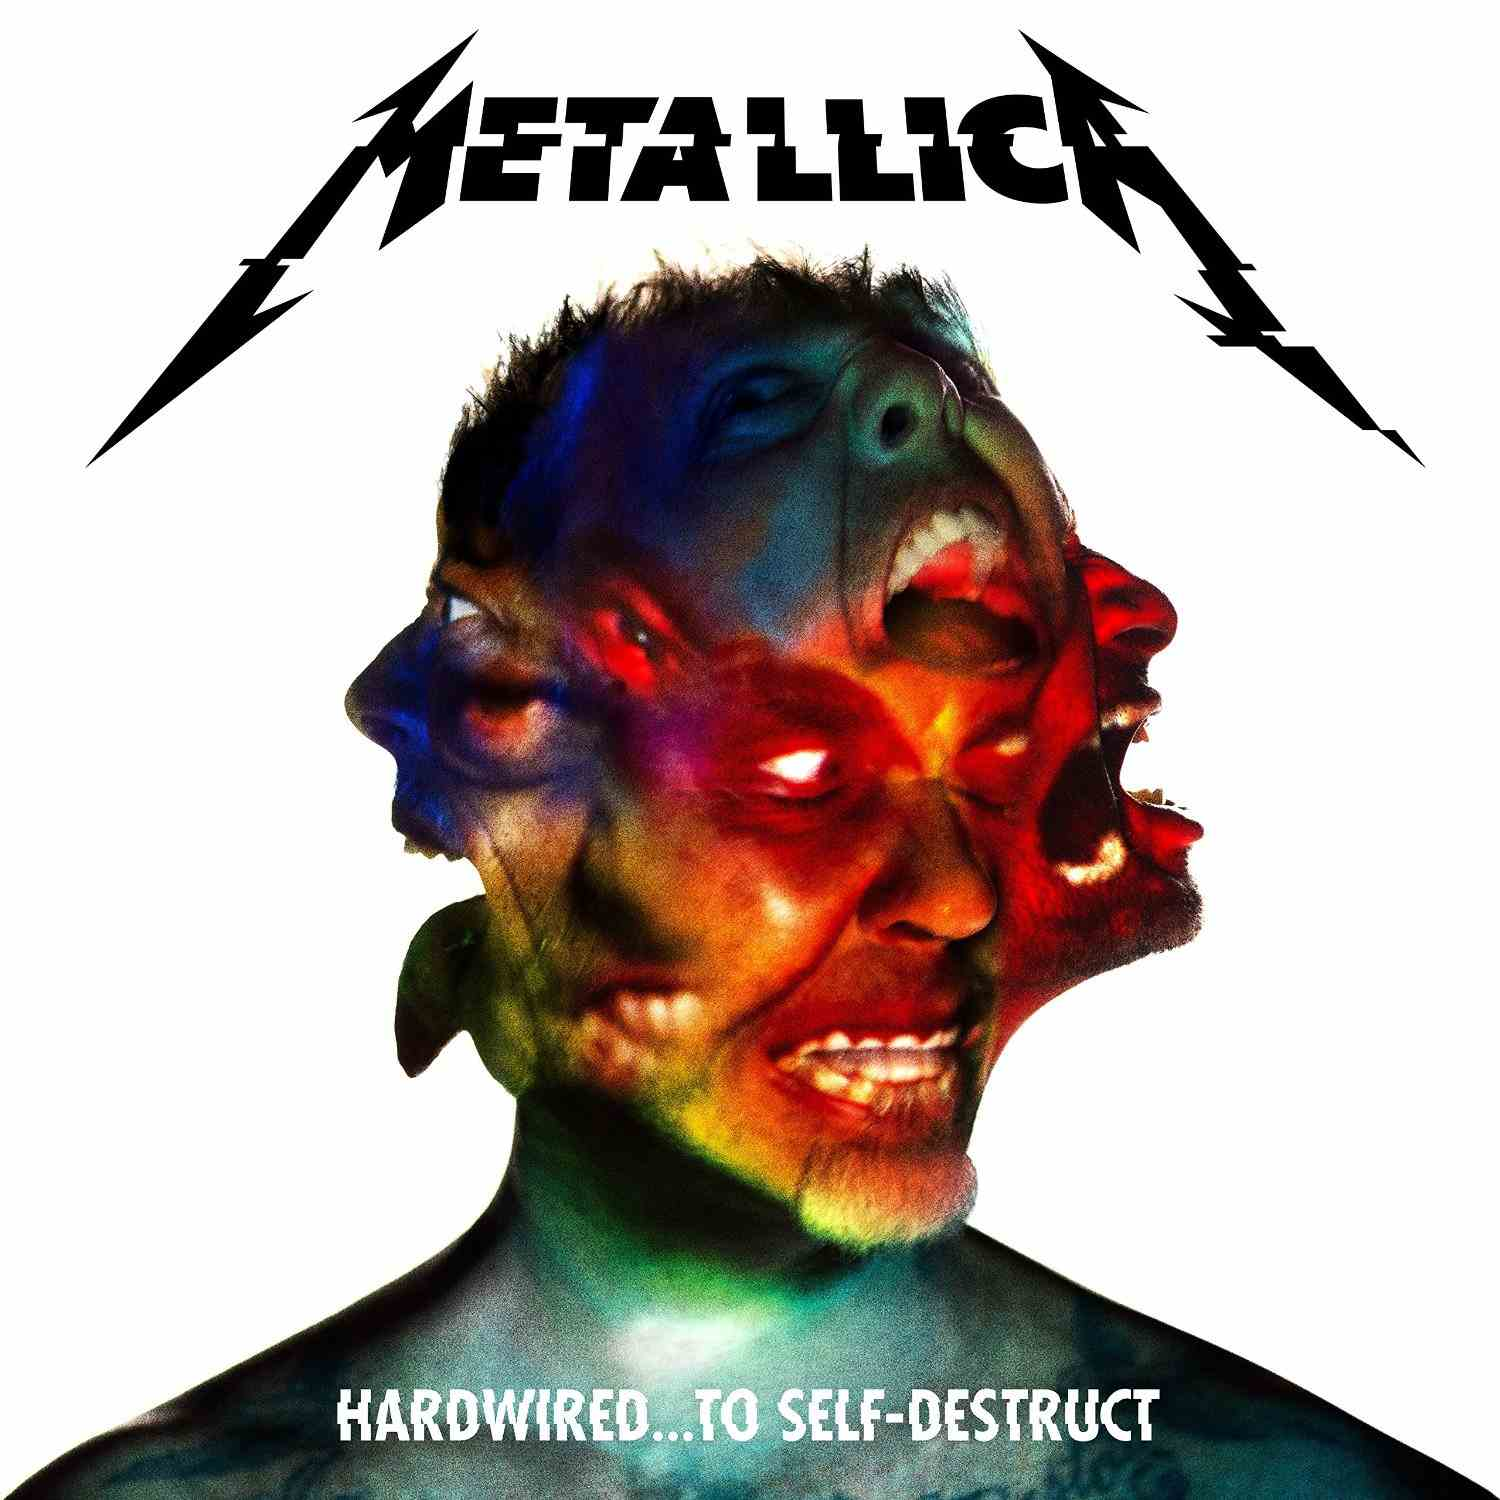 METALLICA - Hardwired...To Self-Destruct - 2 CD